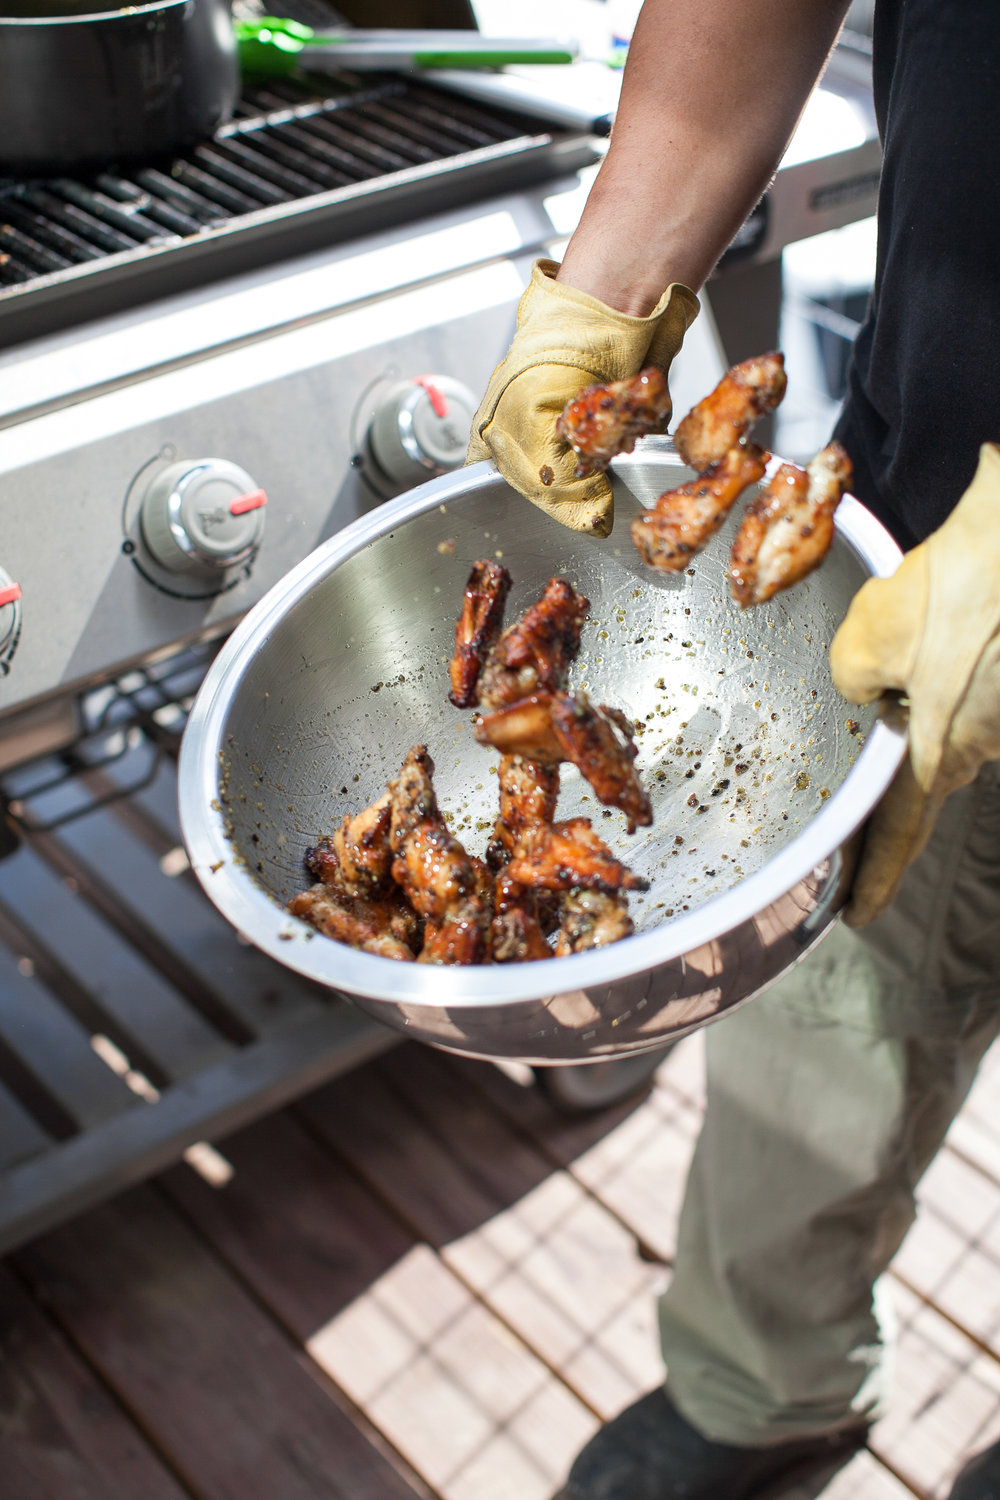 Chicken wings being tossed in butter and sambal sauce in a bowl